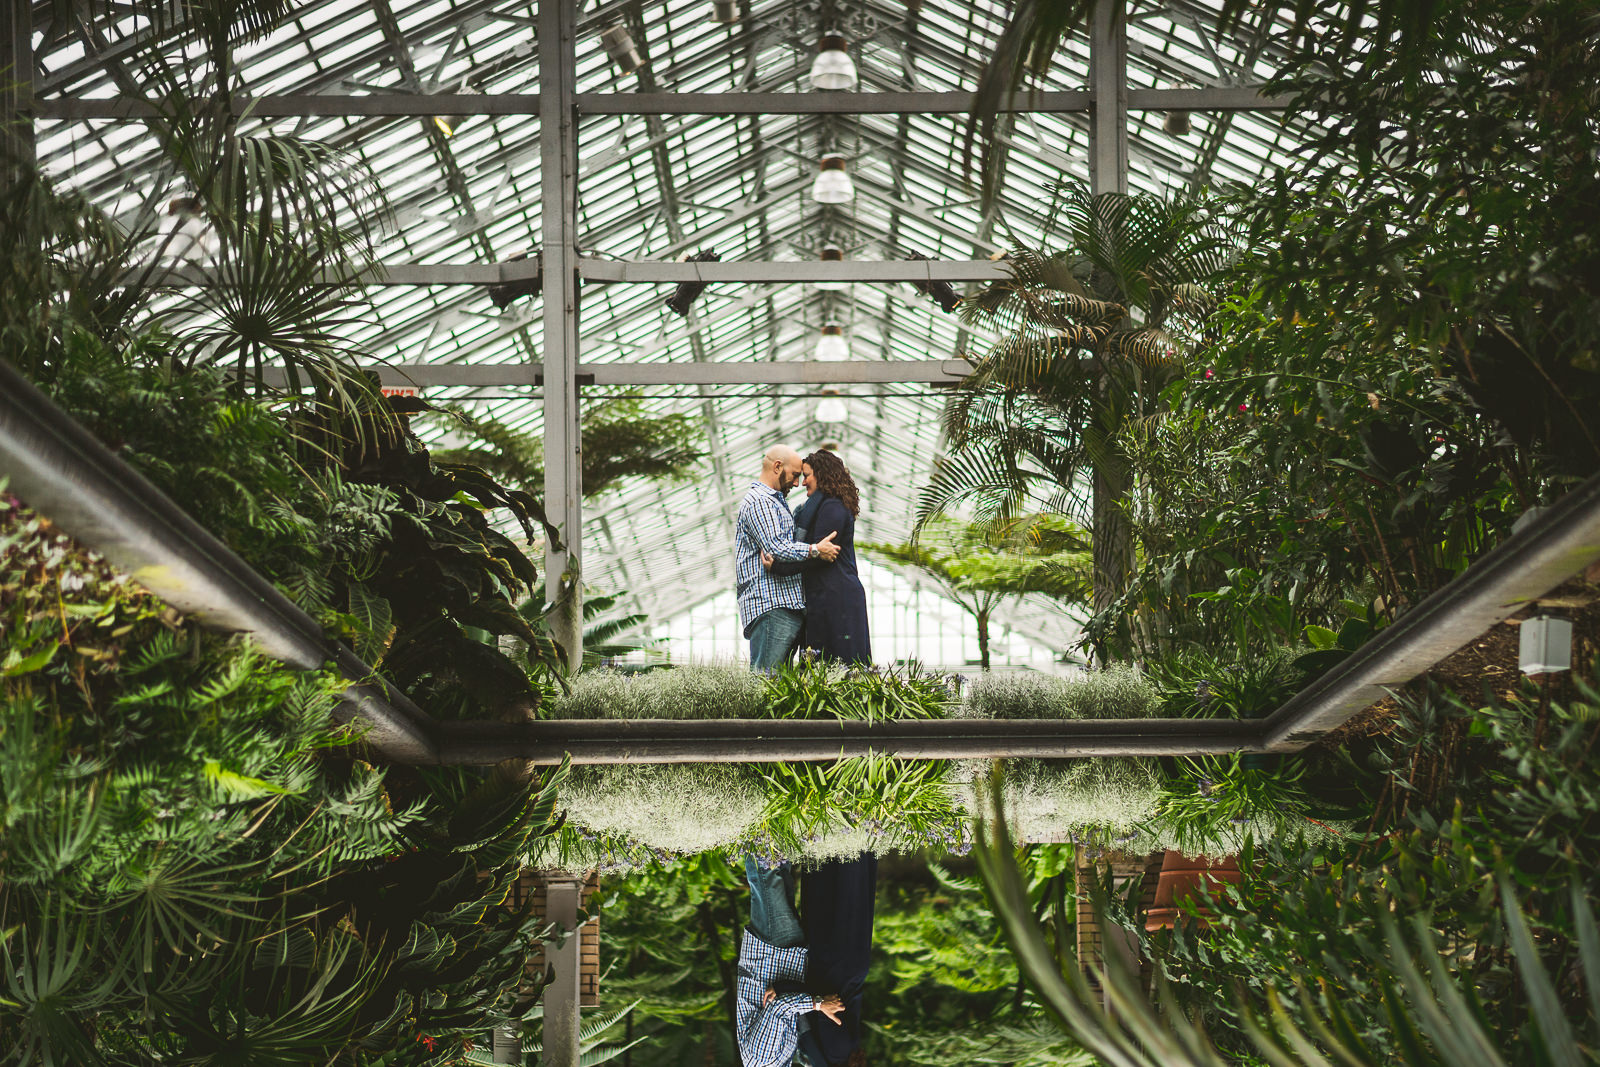 12 upside down reflection at garfield park conservatory